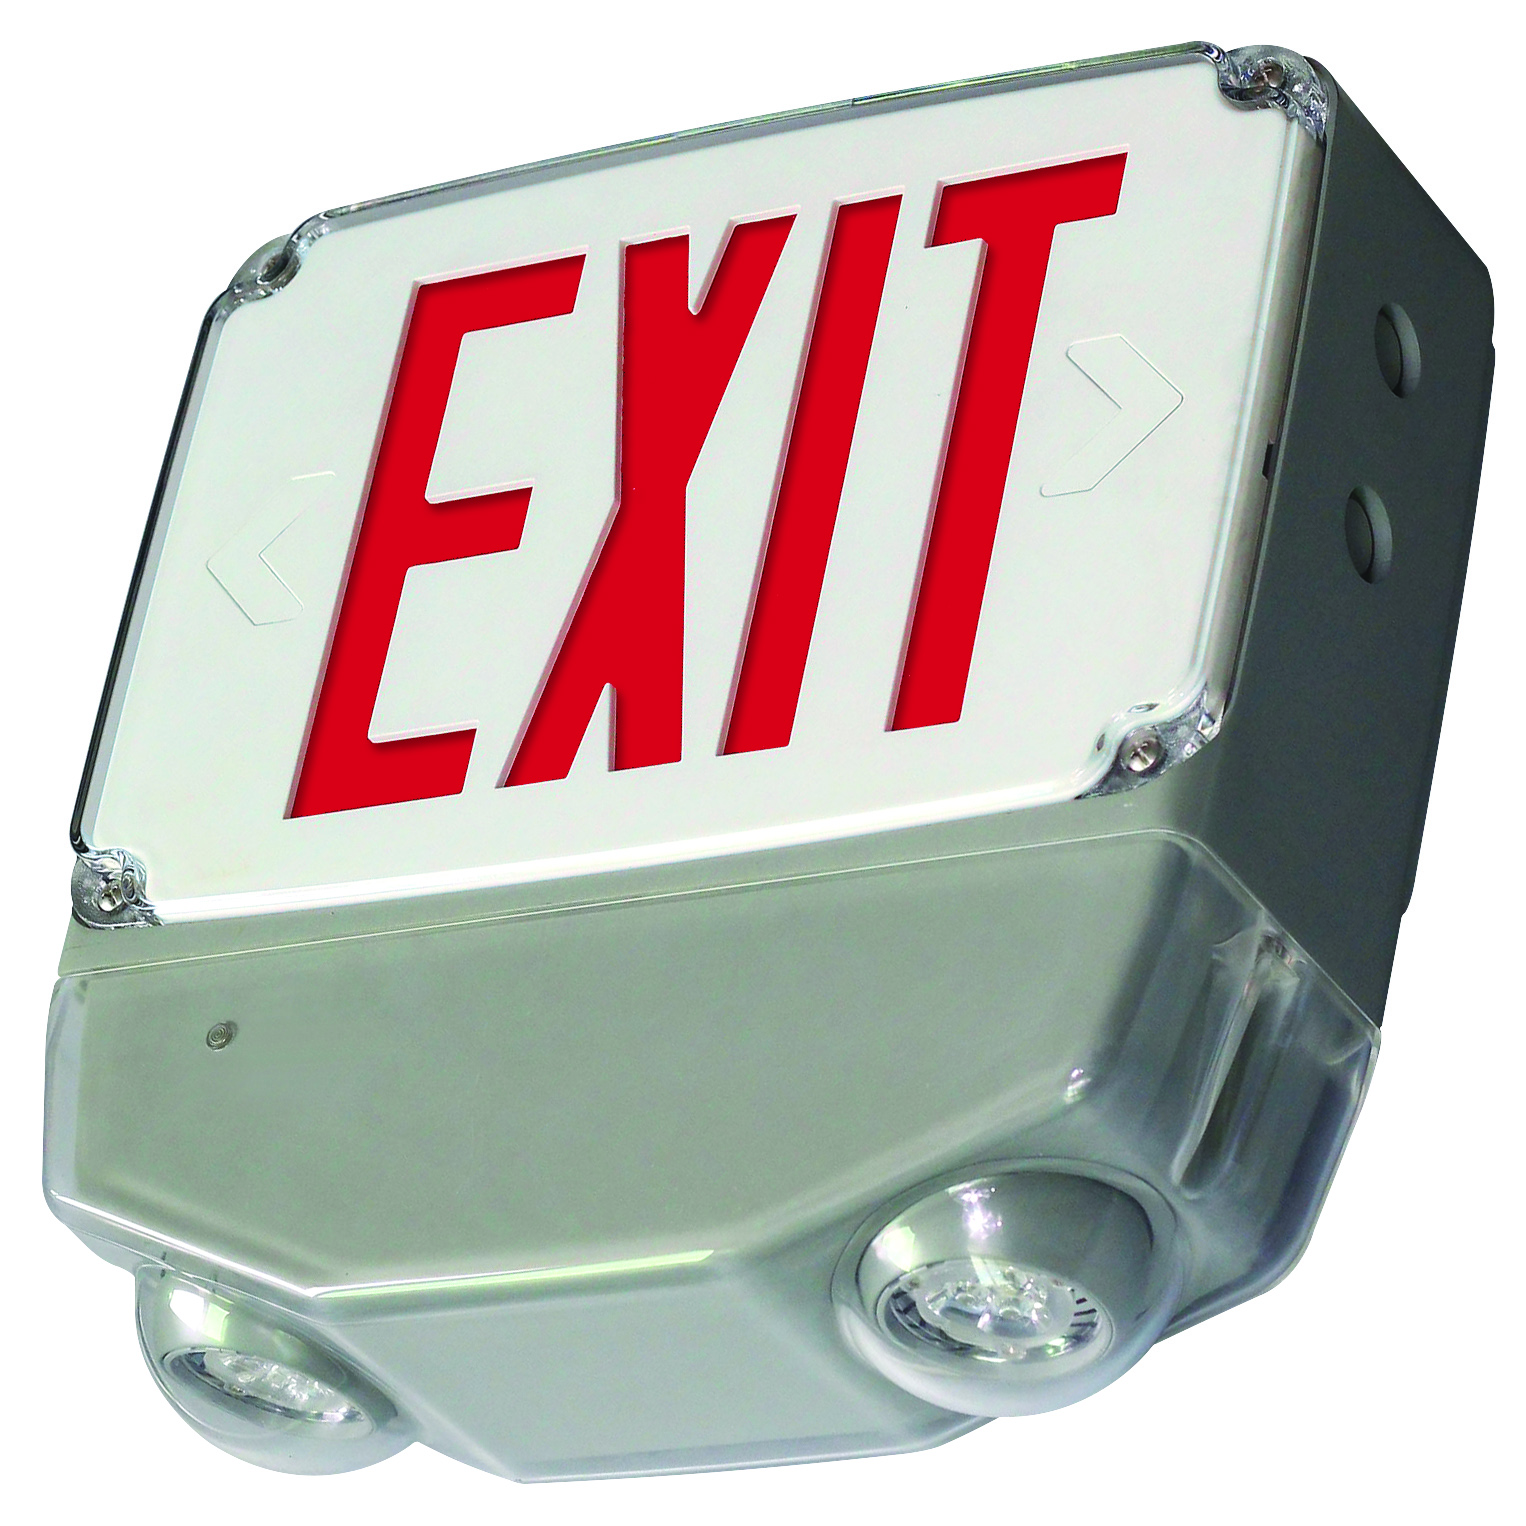 Barron Lighting Group The Originator Of Led Exit Sign And Brands Such As Exitronix Trace Lite Igs Specialtyled Is Excited To Launch Newest